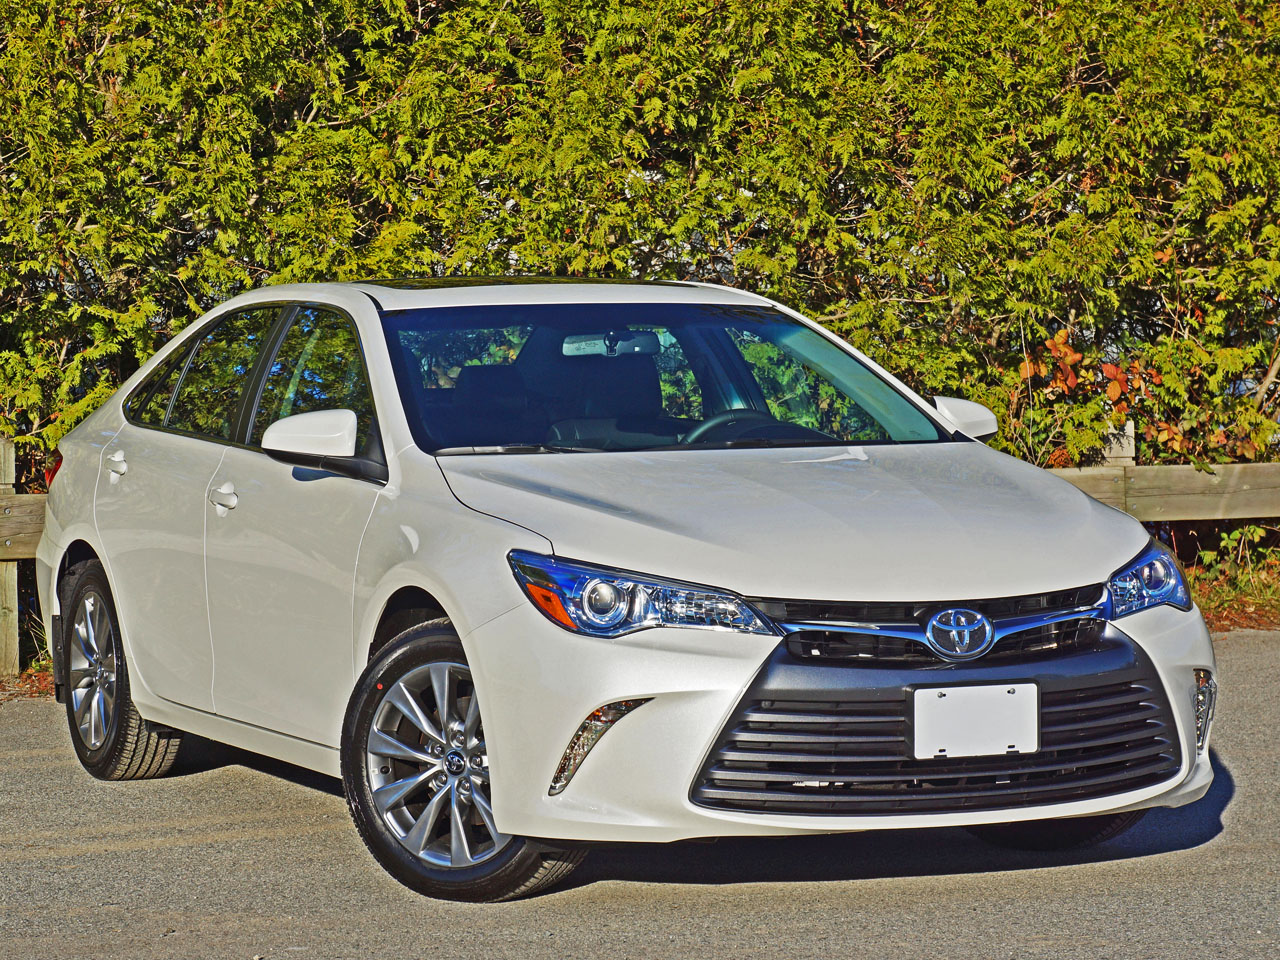 2016 toyota camry xle road test review carcostcanada. Black Bedroom Furniture Sets. Home Design Ideas